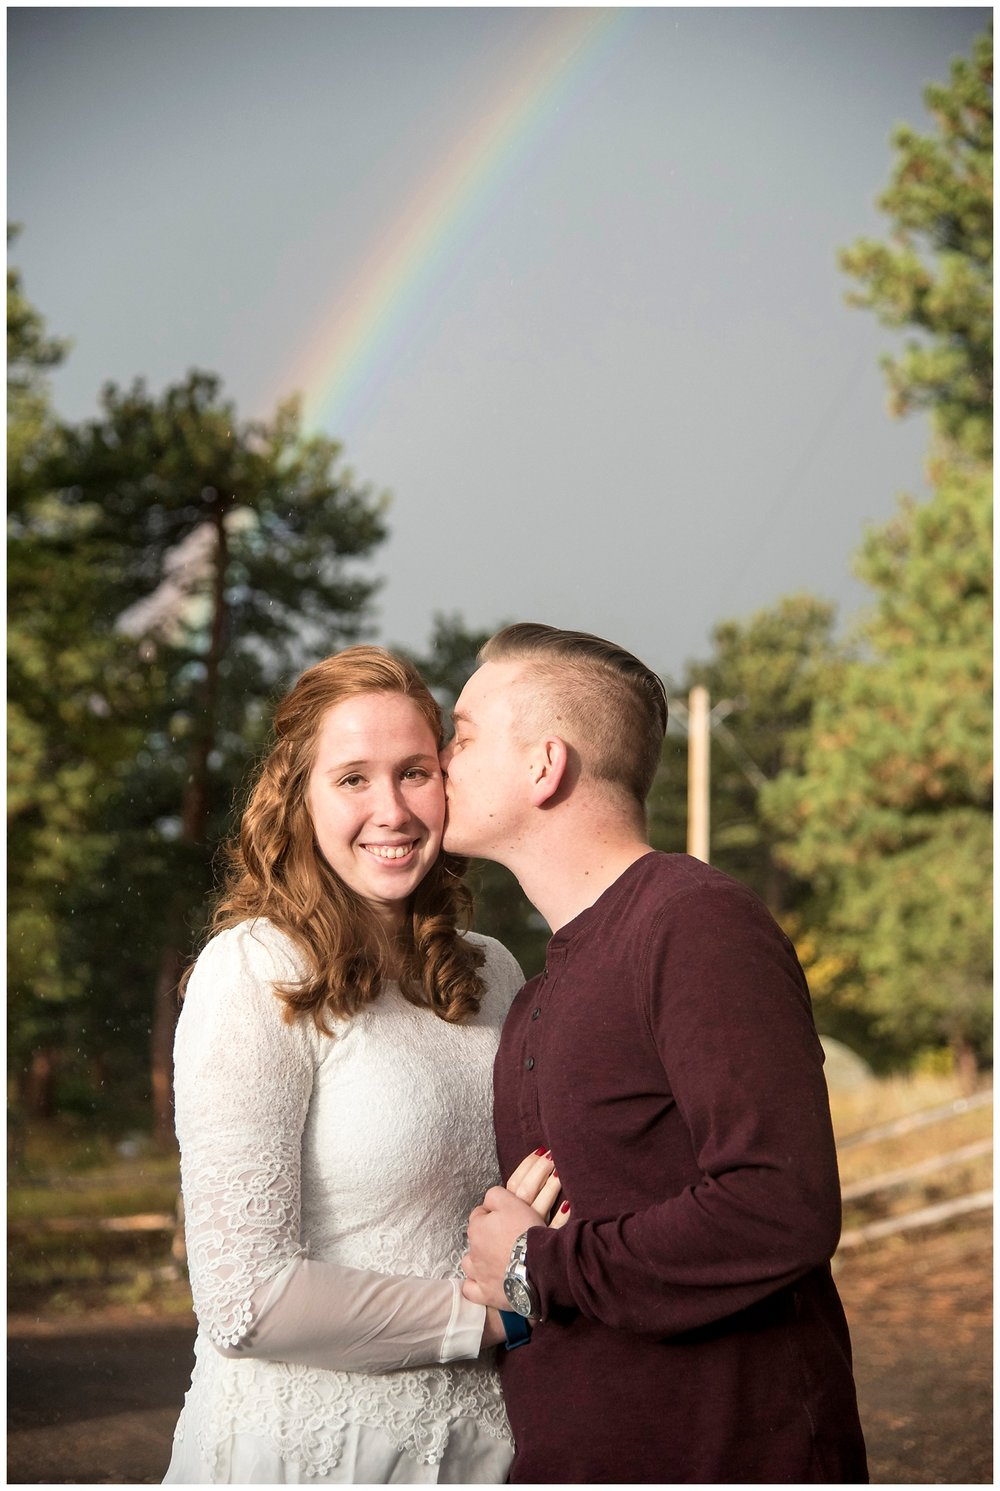 Man Kissing Woman with Rainbow | Don & Aliyah's Mountain Engagement Photography | Farm Wedding Photographer | Apollo Fields Wedding Wedding Photojournalism